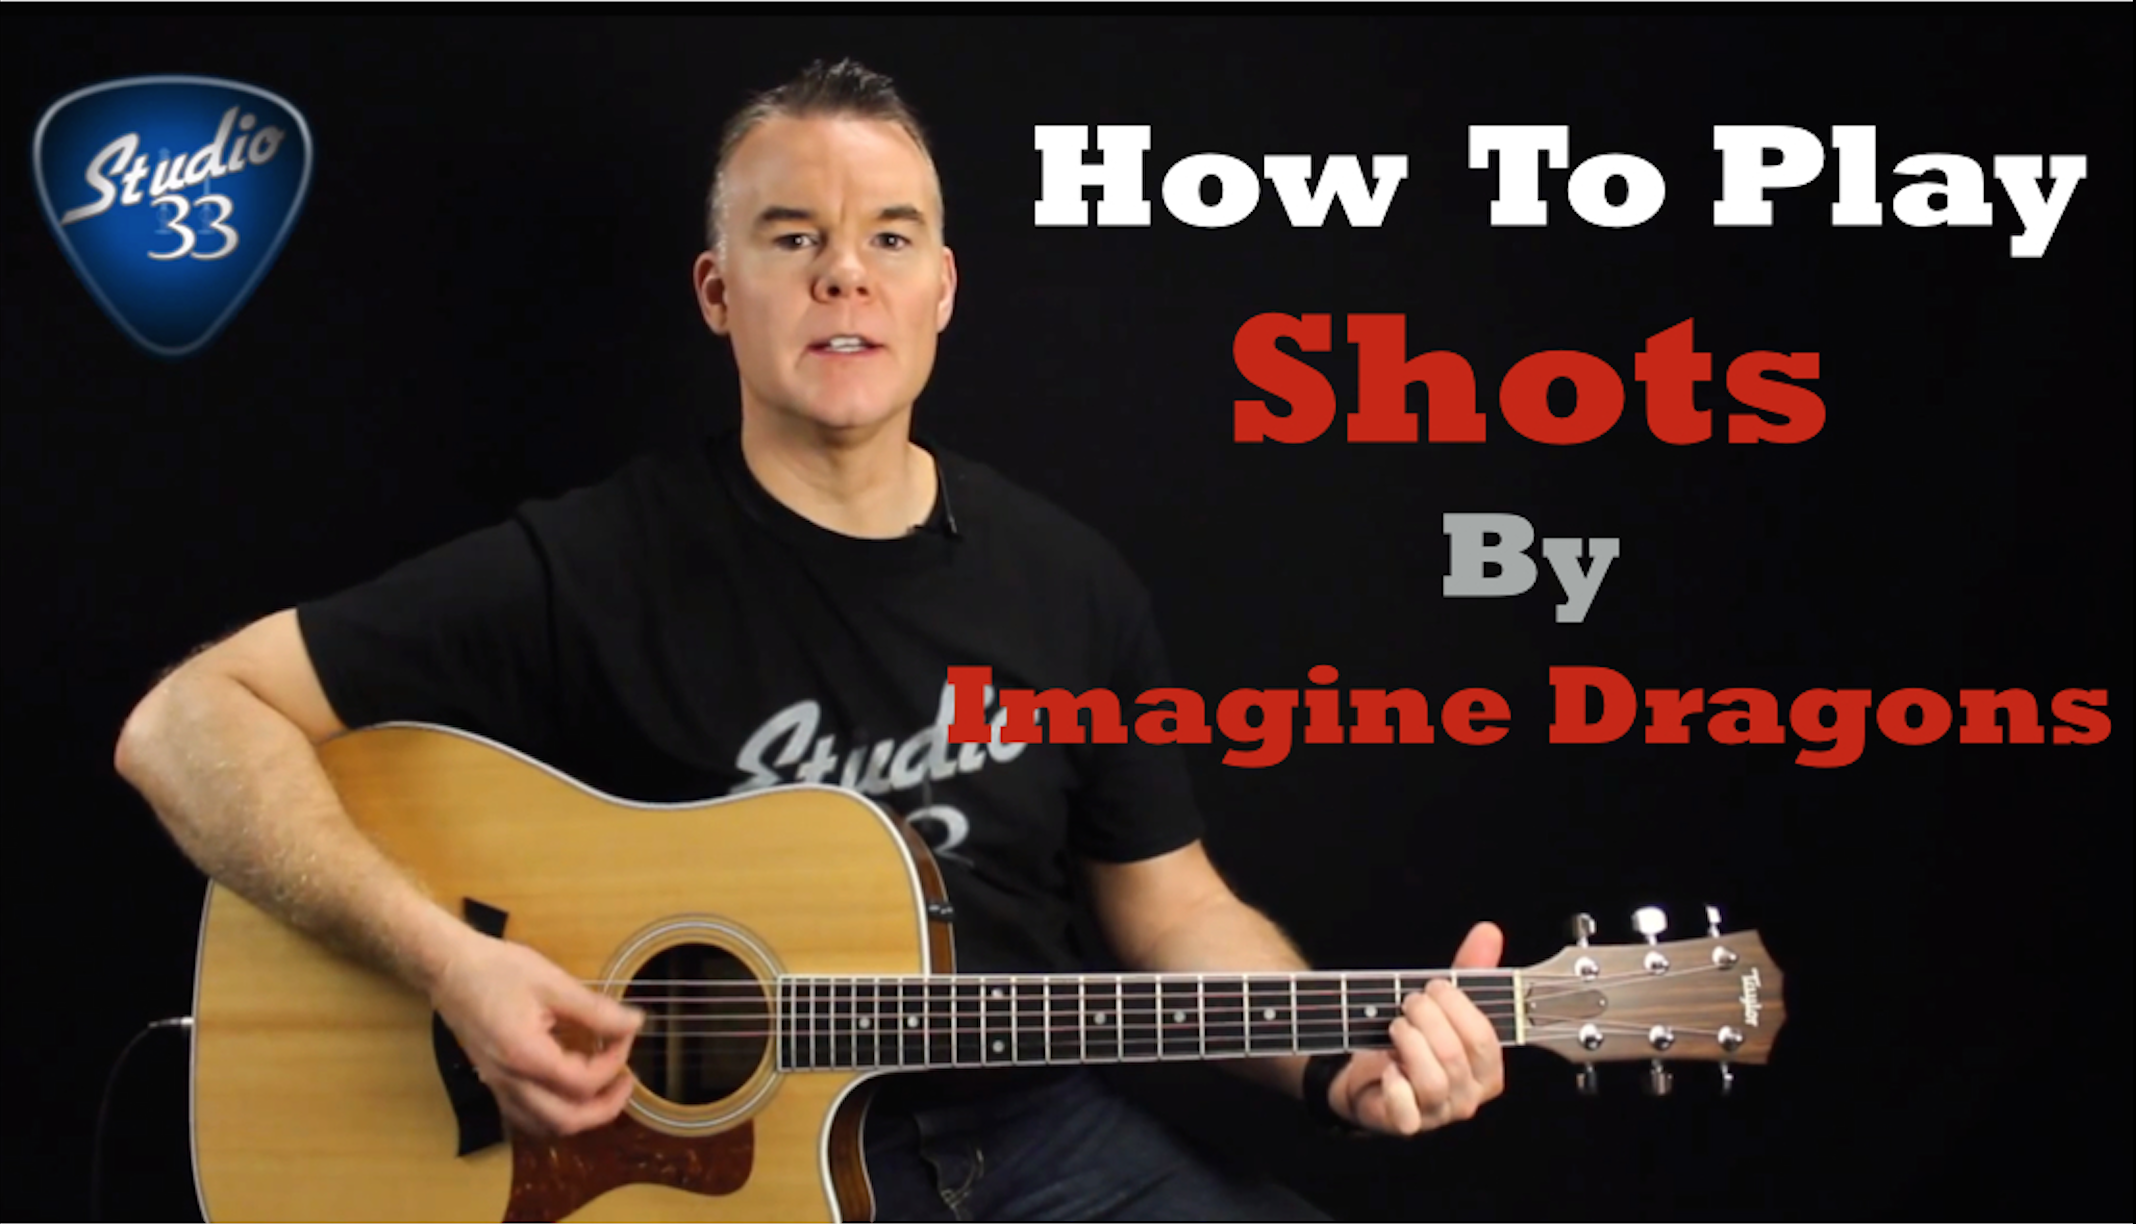 How To Play Shots By Imagine Dragons